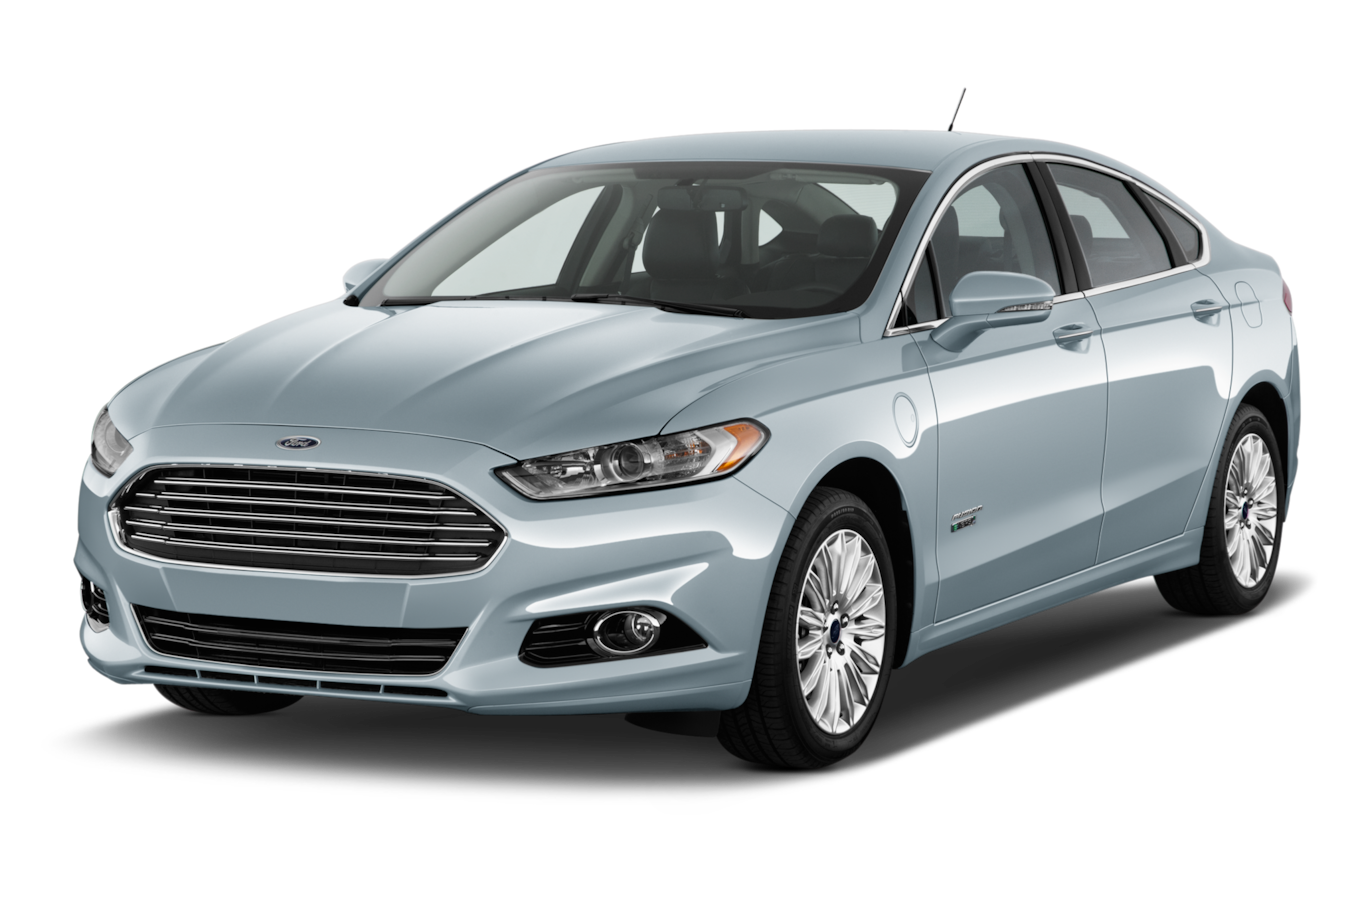 2014 ford fusion energi se review